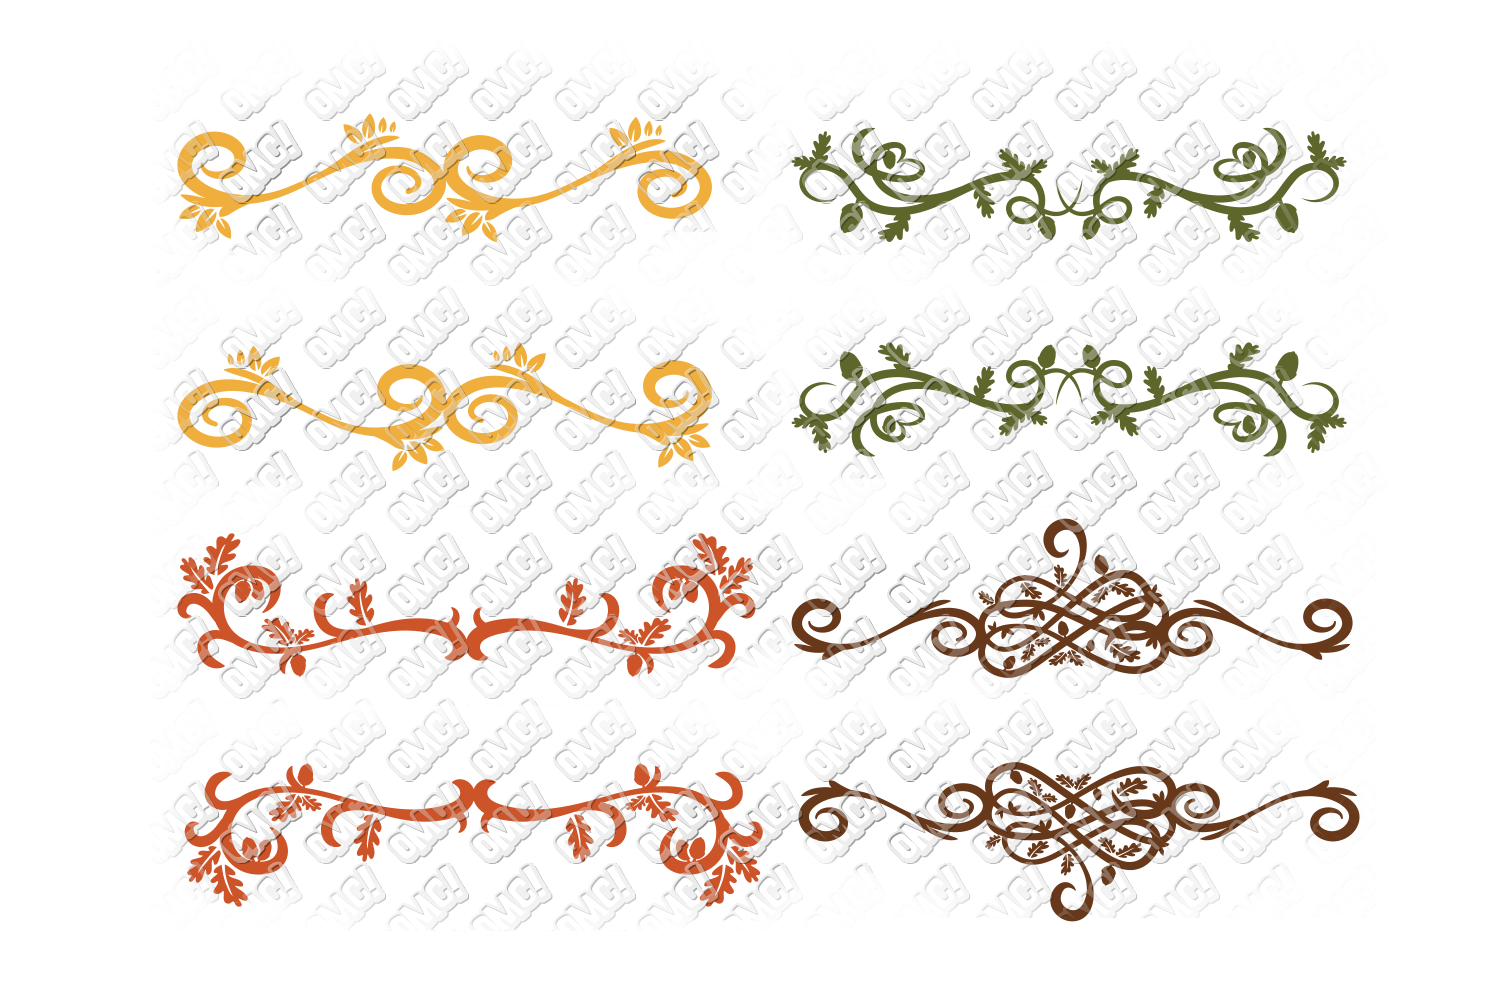 Fall Flourish SVG Monogram Border in SVG, DXF, PNG, EPS, JPG example image 4